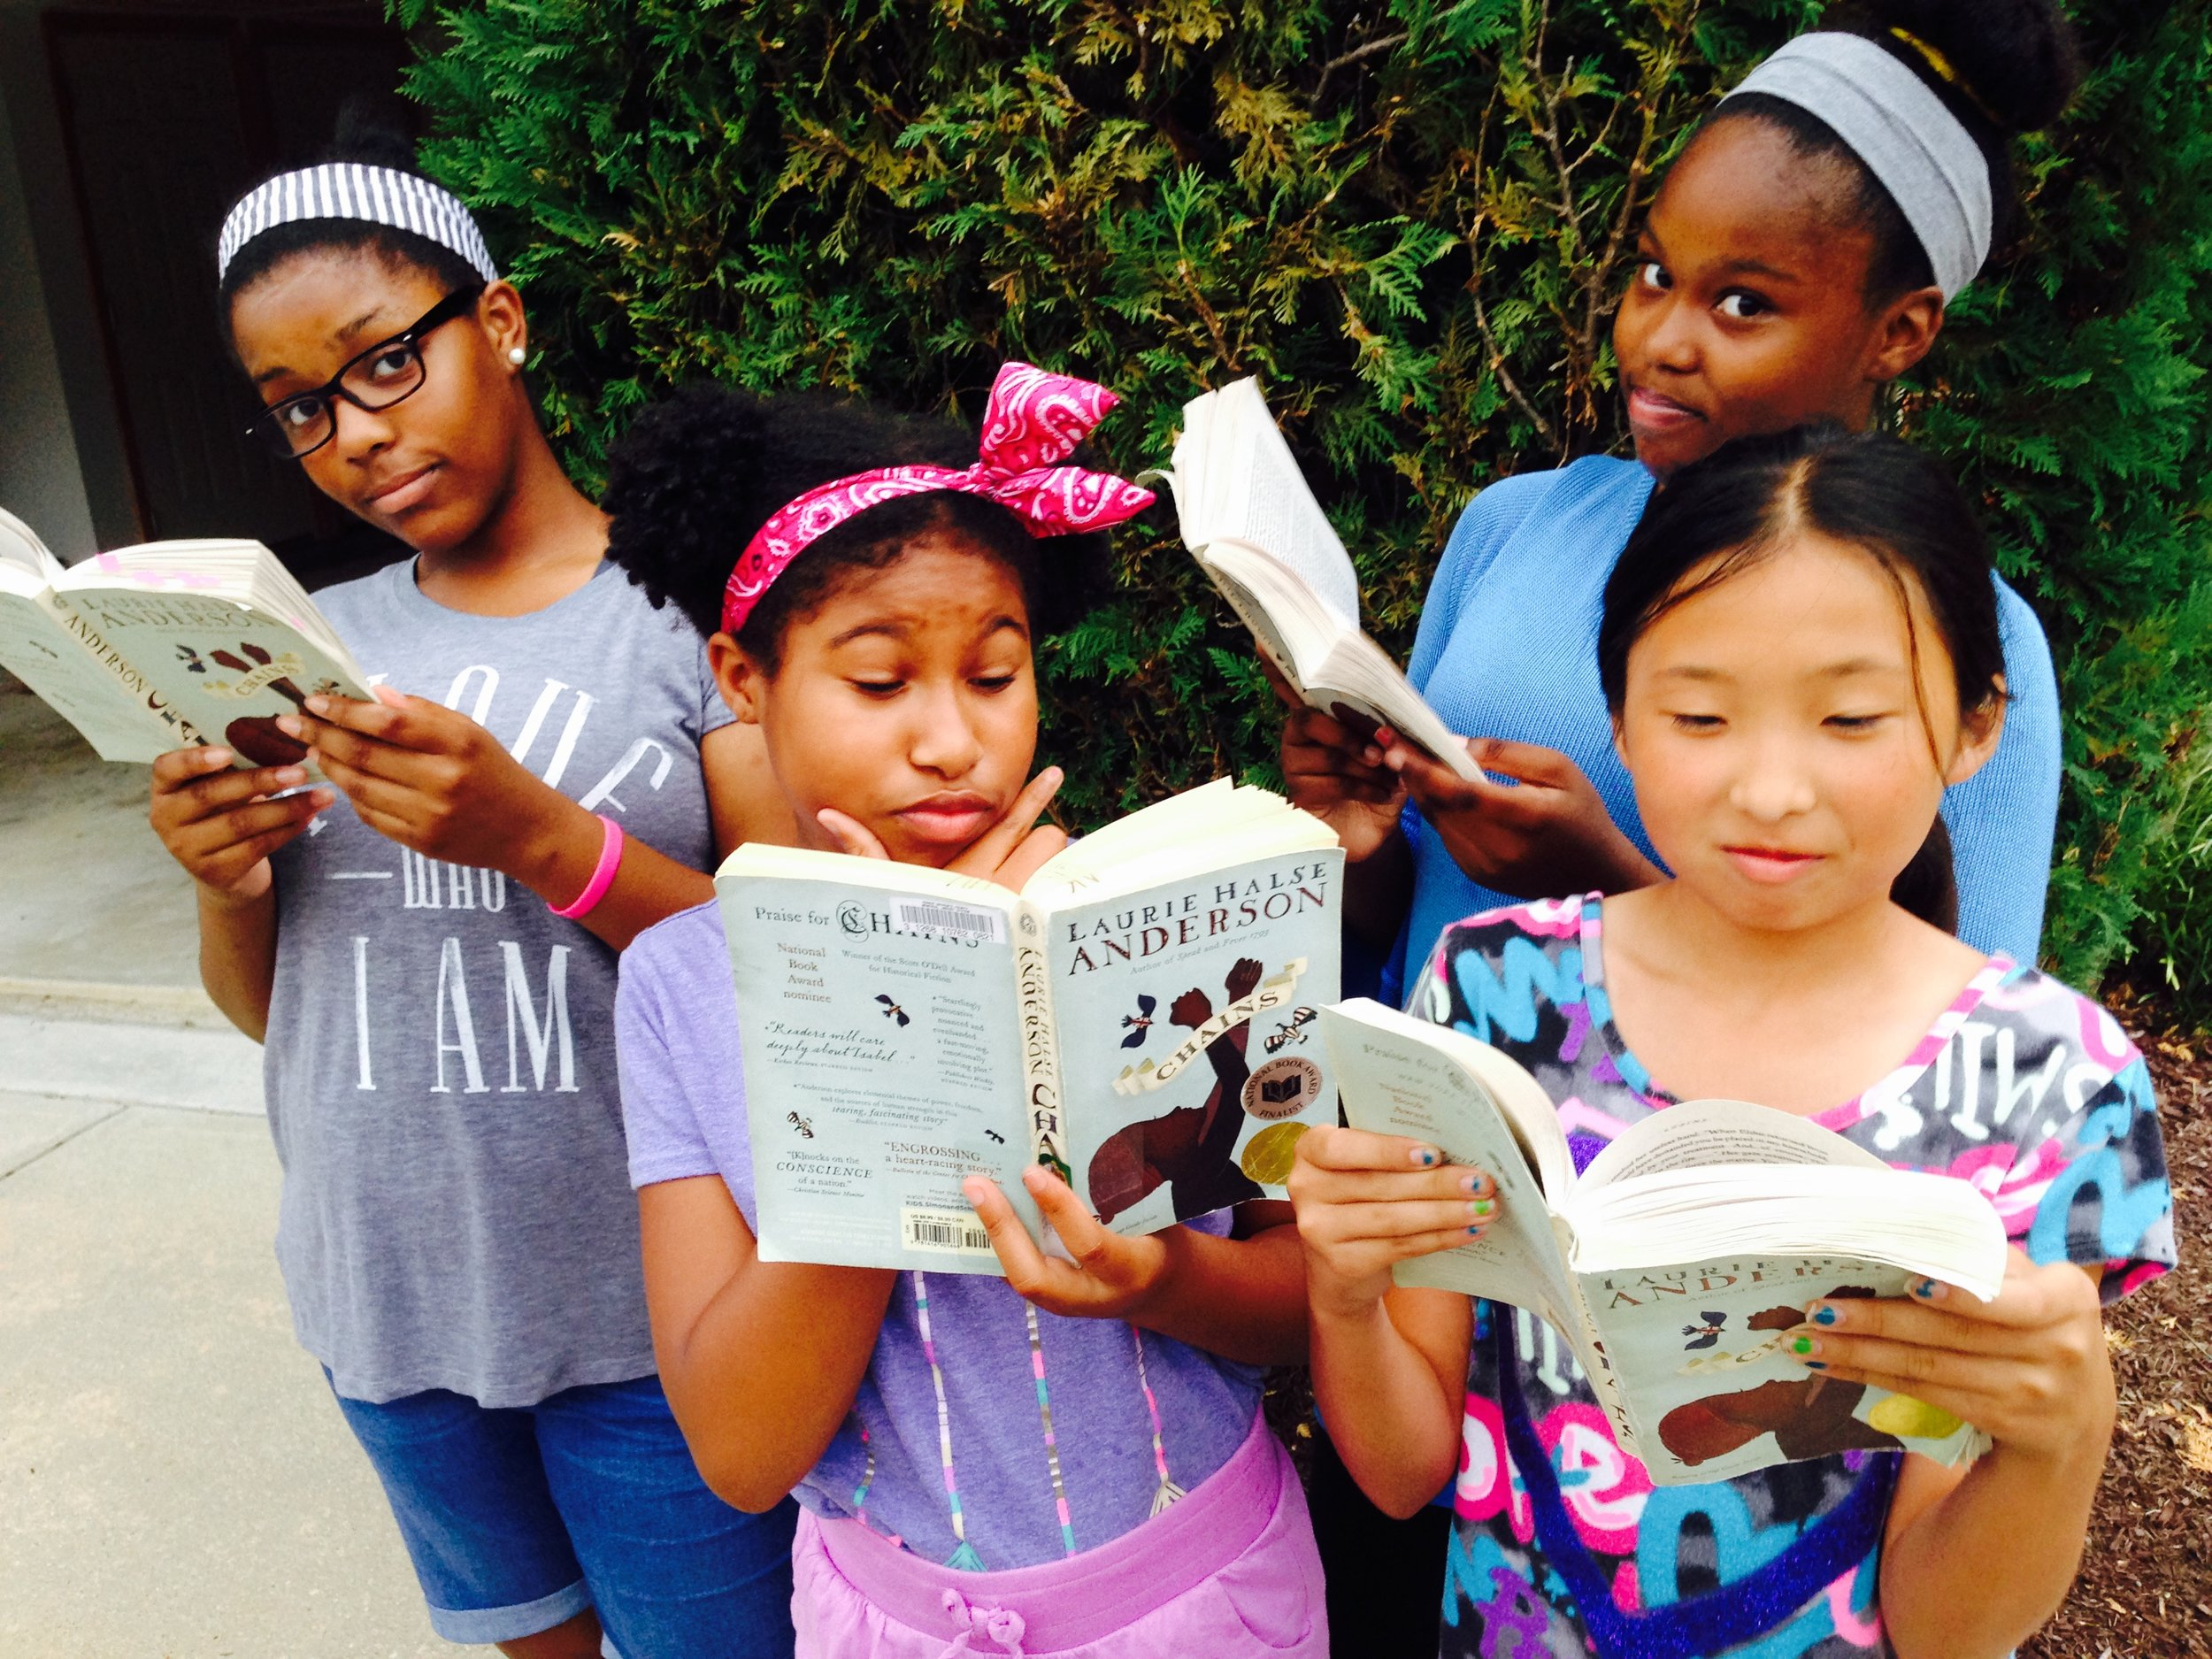 This book club in Maryland discuss historical fiction and seventh grade boys.